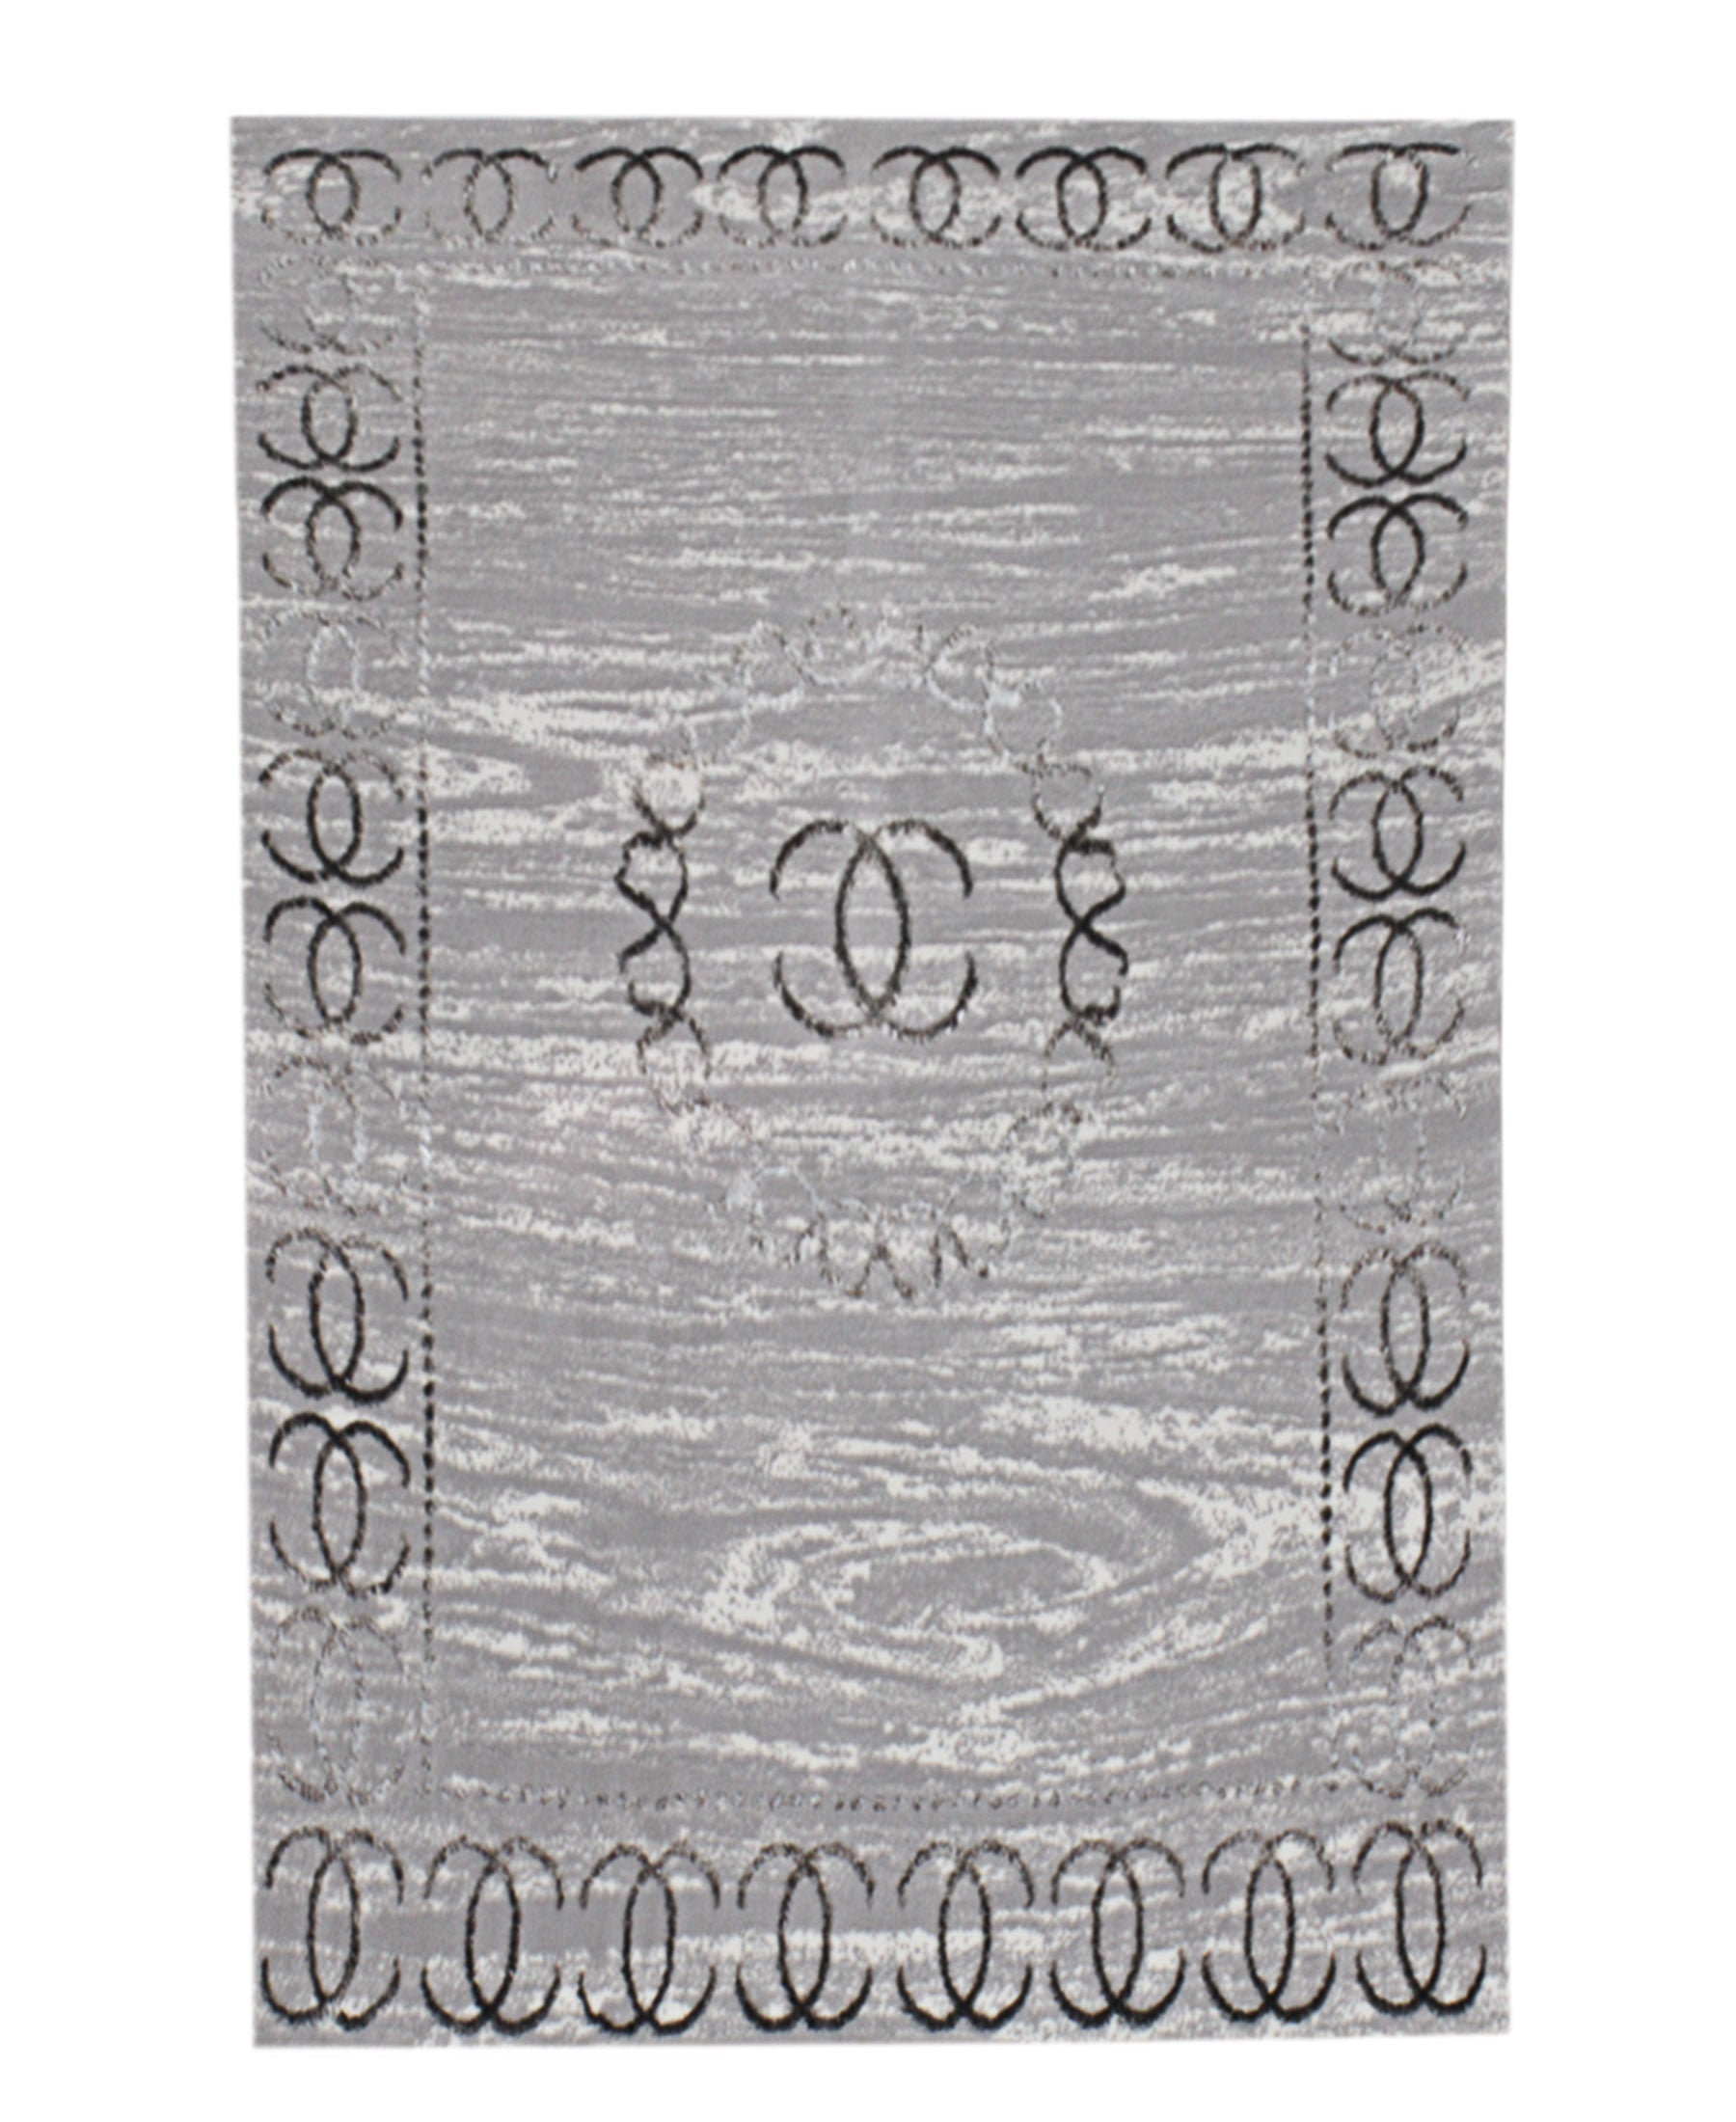 Bodrum Channel Carpet 800mm X 1400mm - Dark Grey